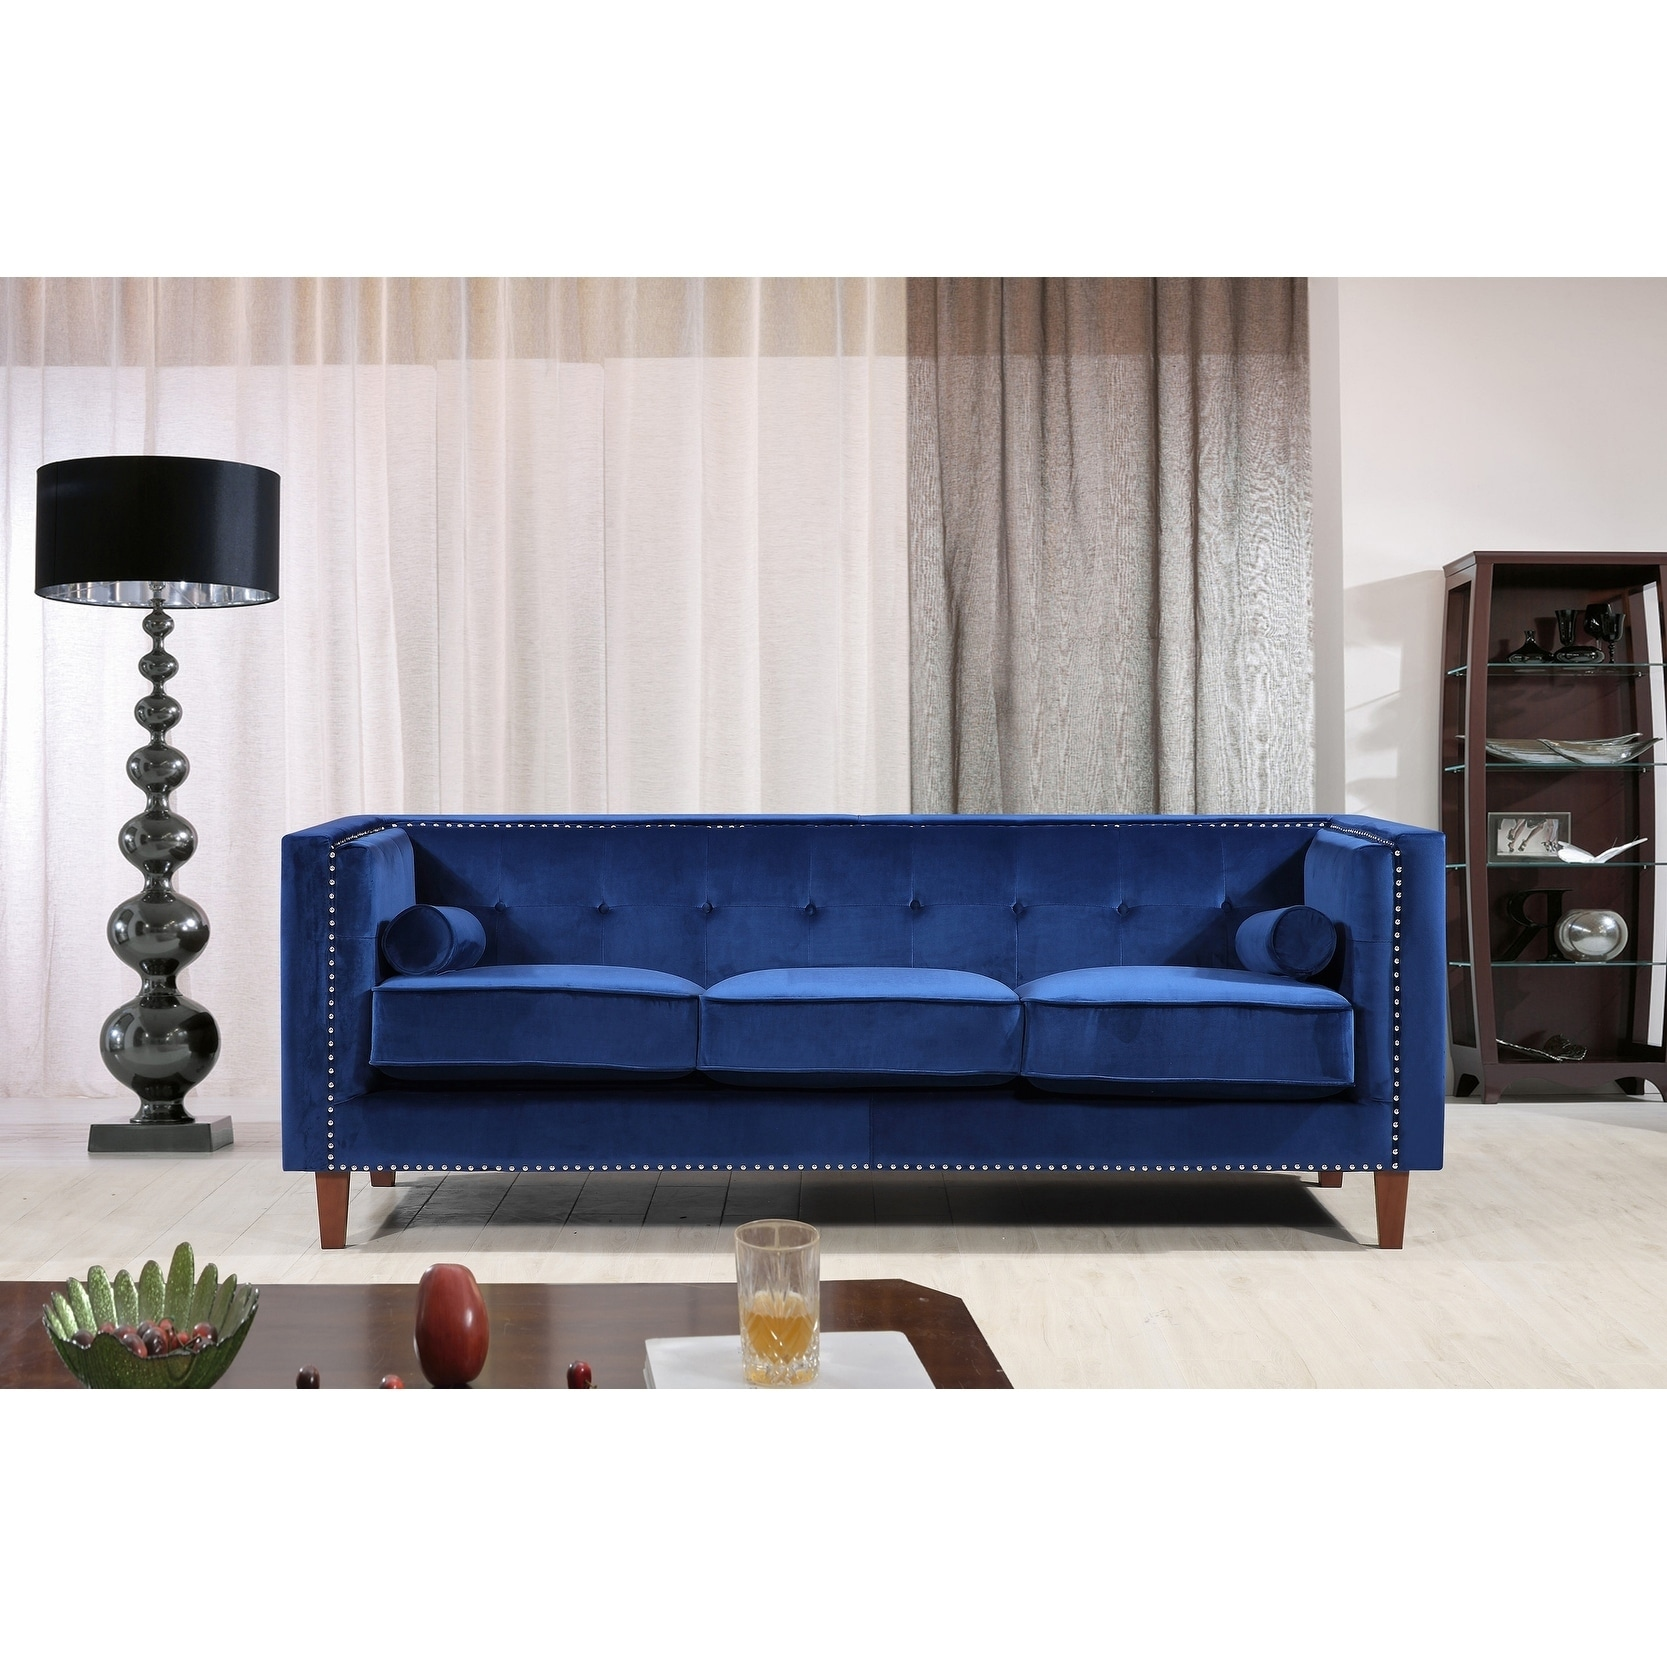 New Orleans Mid Century Nailhead Chesterfield Sofa 8 9 X 12 Free Shipping Today Com 19822454